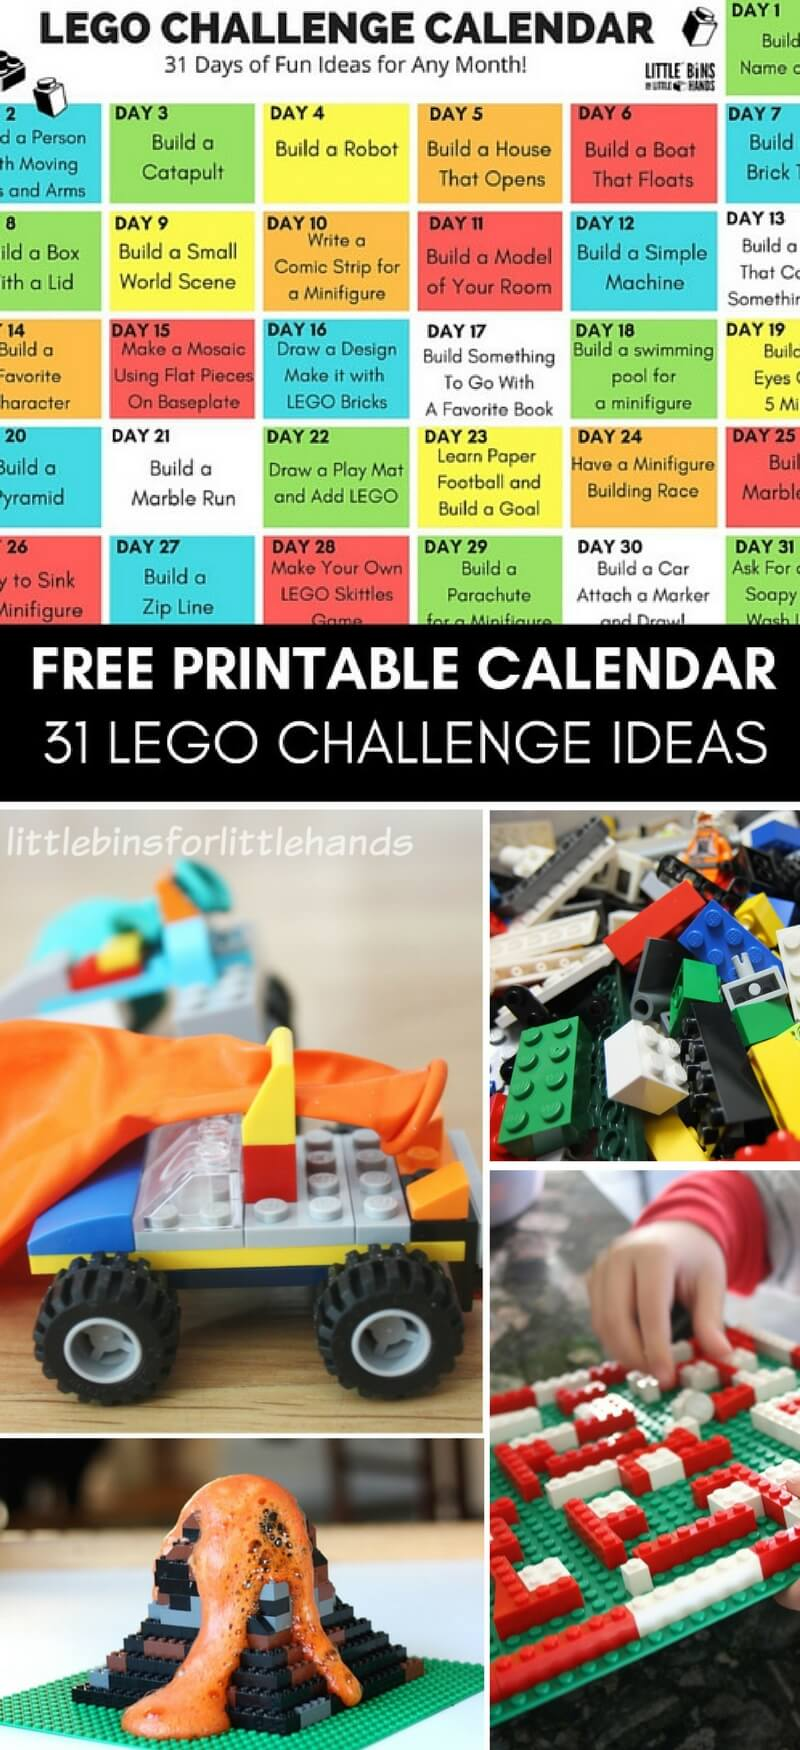 Free Printable Lego Challenge Calendar For Kids! Our 31 Day Lego Calendar  Is Filled With